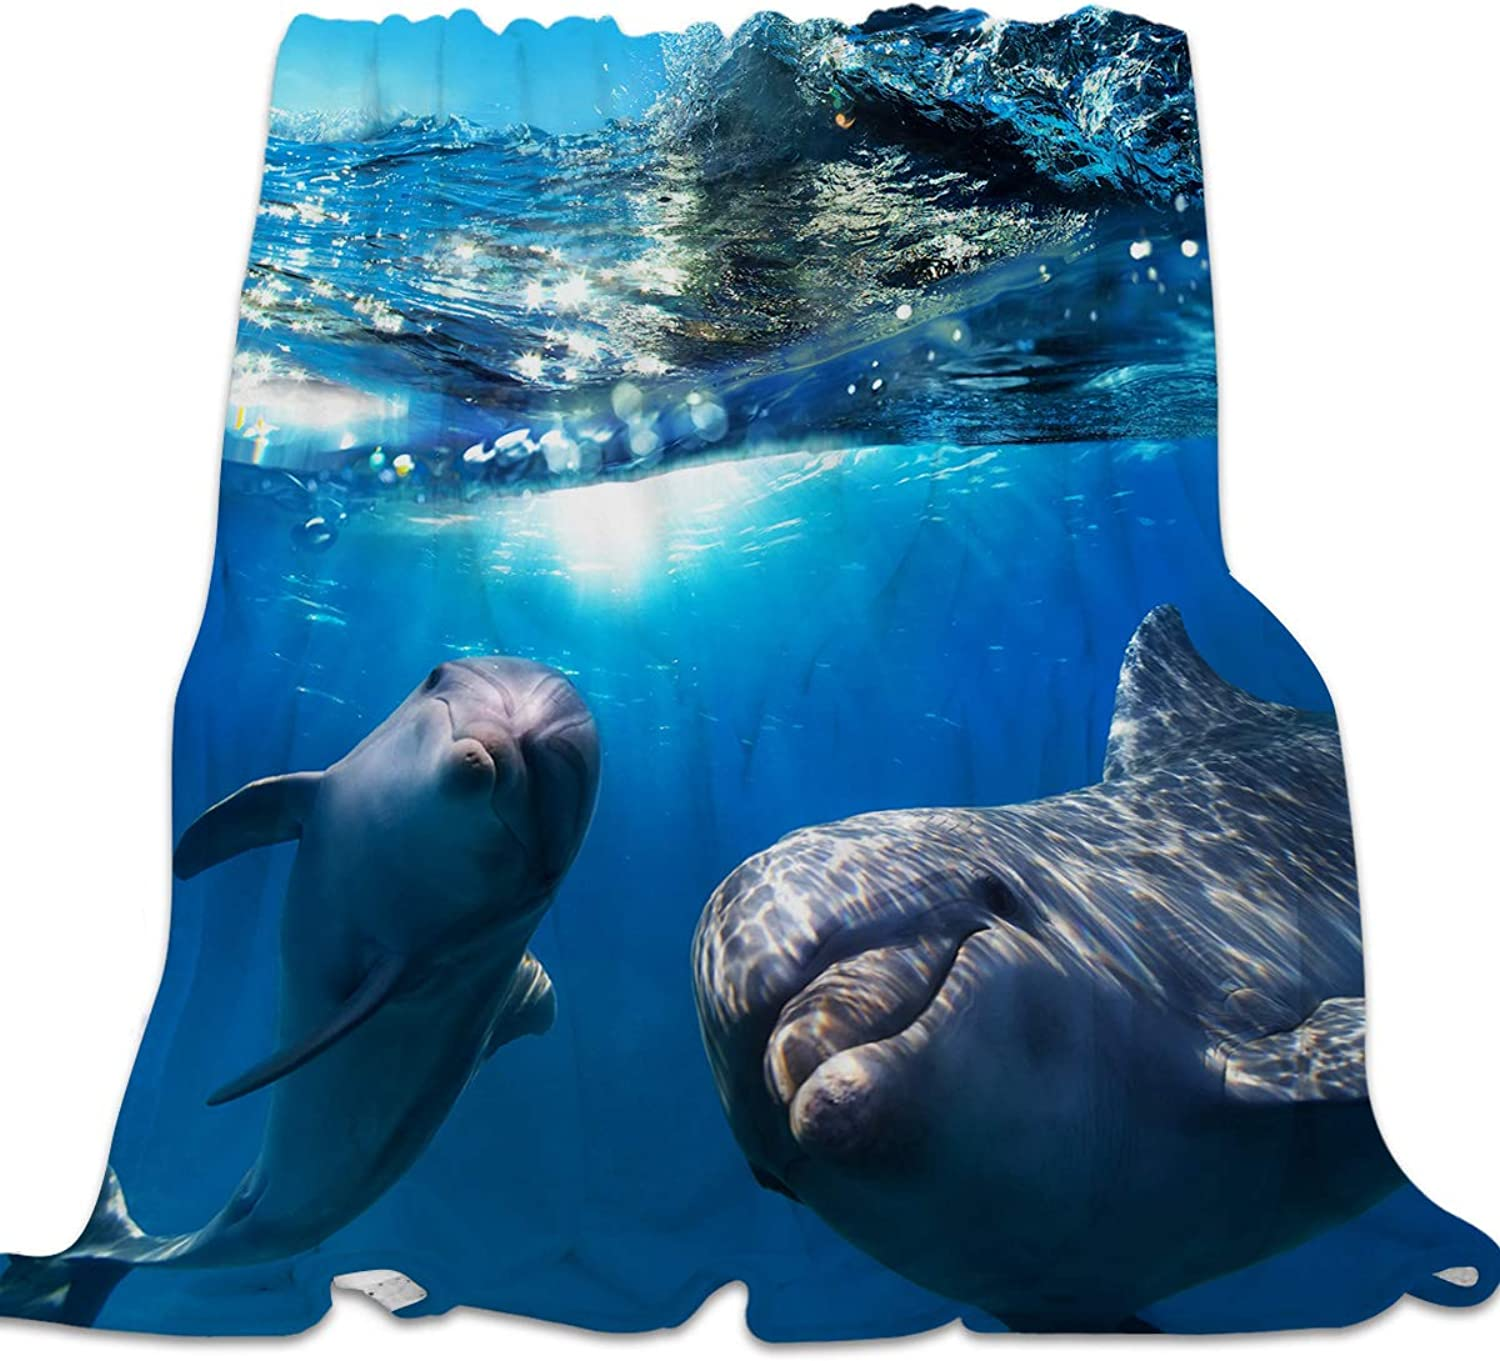 YEHO Art Gallery 39x49 Inch Flannel Fleece Bed Blanket Soft Throw-Blankets for Girls Boys,Cute 3D Dolphins Submarine World,Lightweight Warm Kids Blankets for Bedroom Living Room Sofa Couch Home Decor